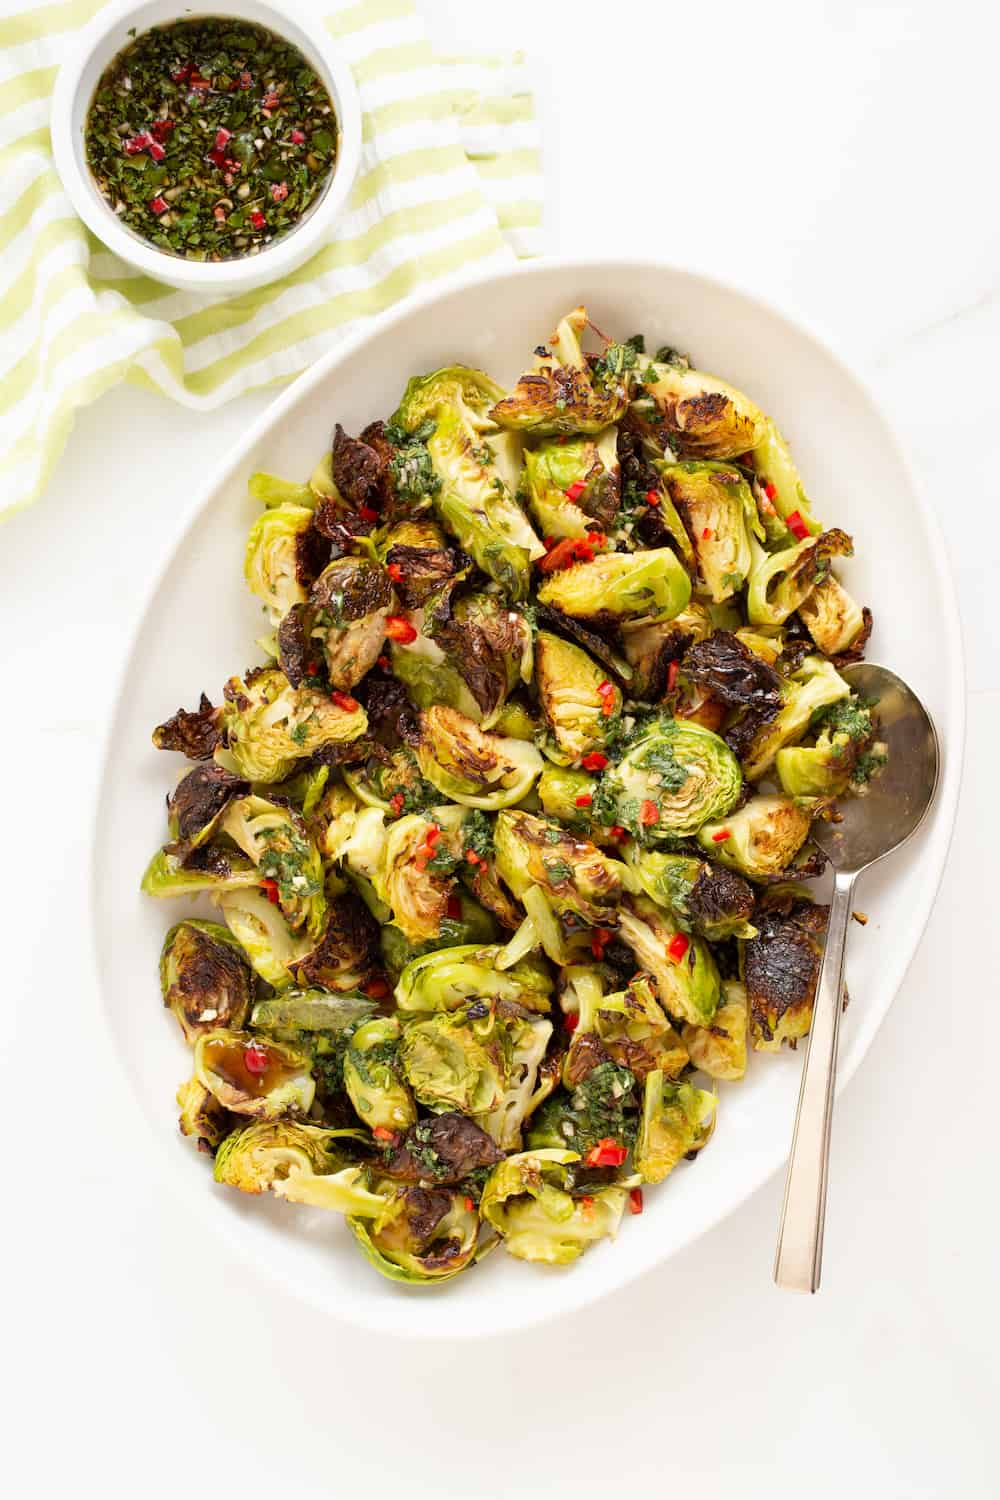 roasted brussels sprouts with sweet and salty dressing